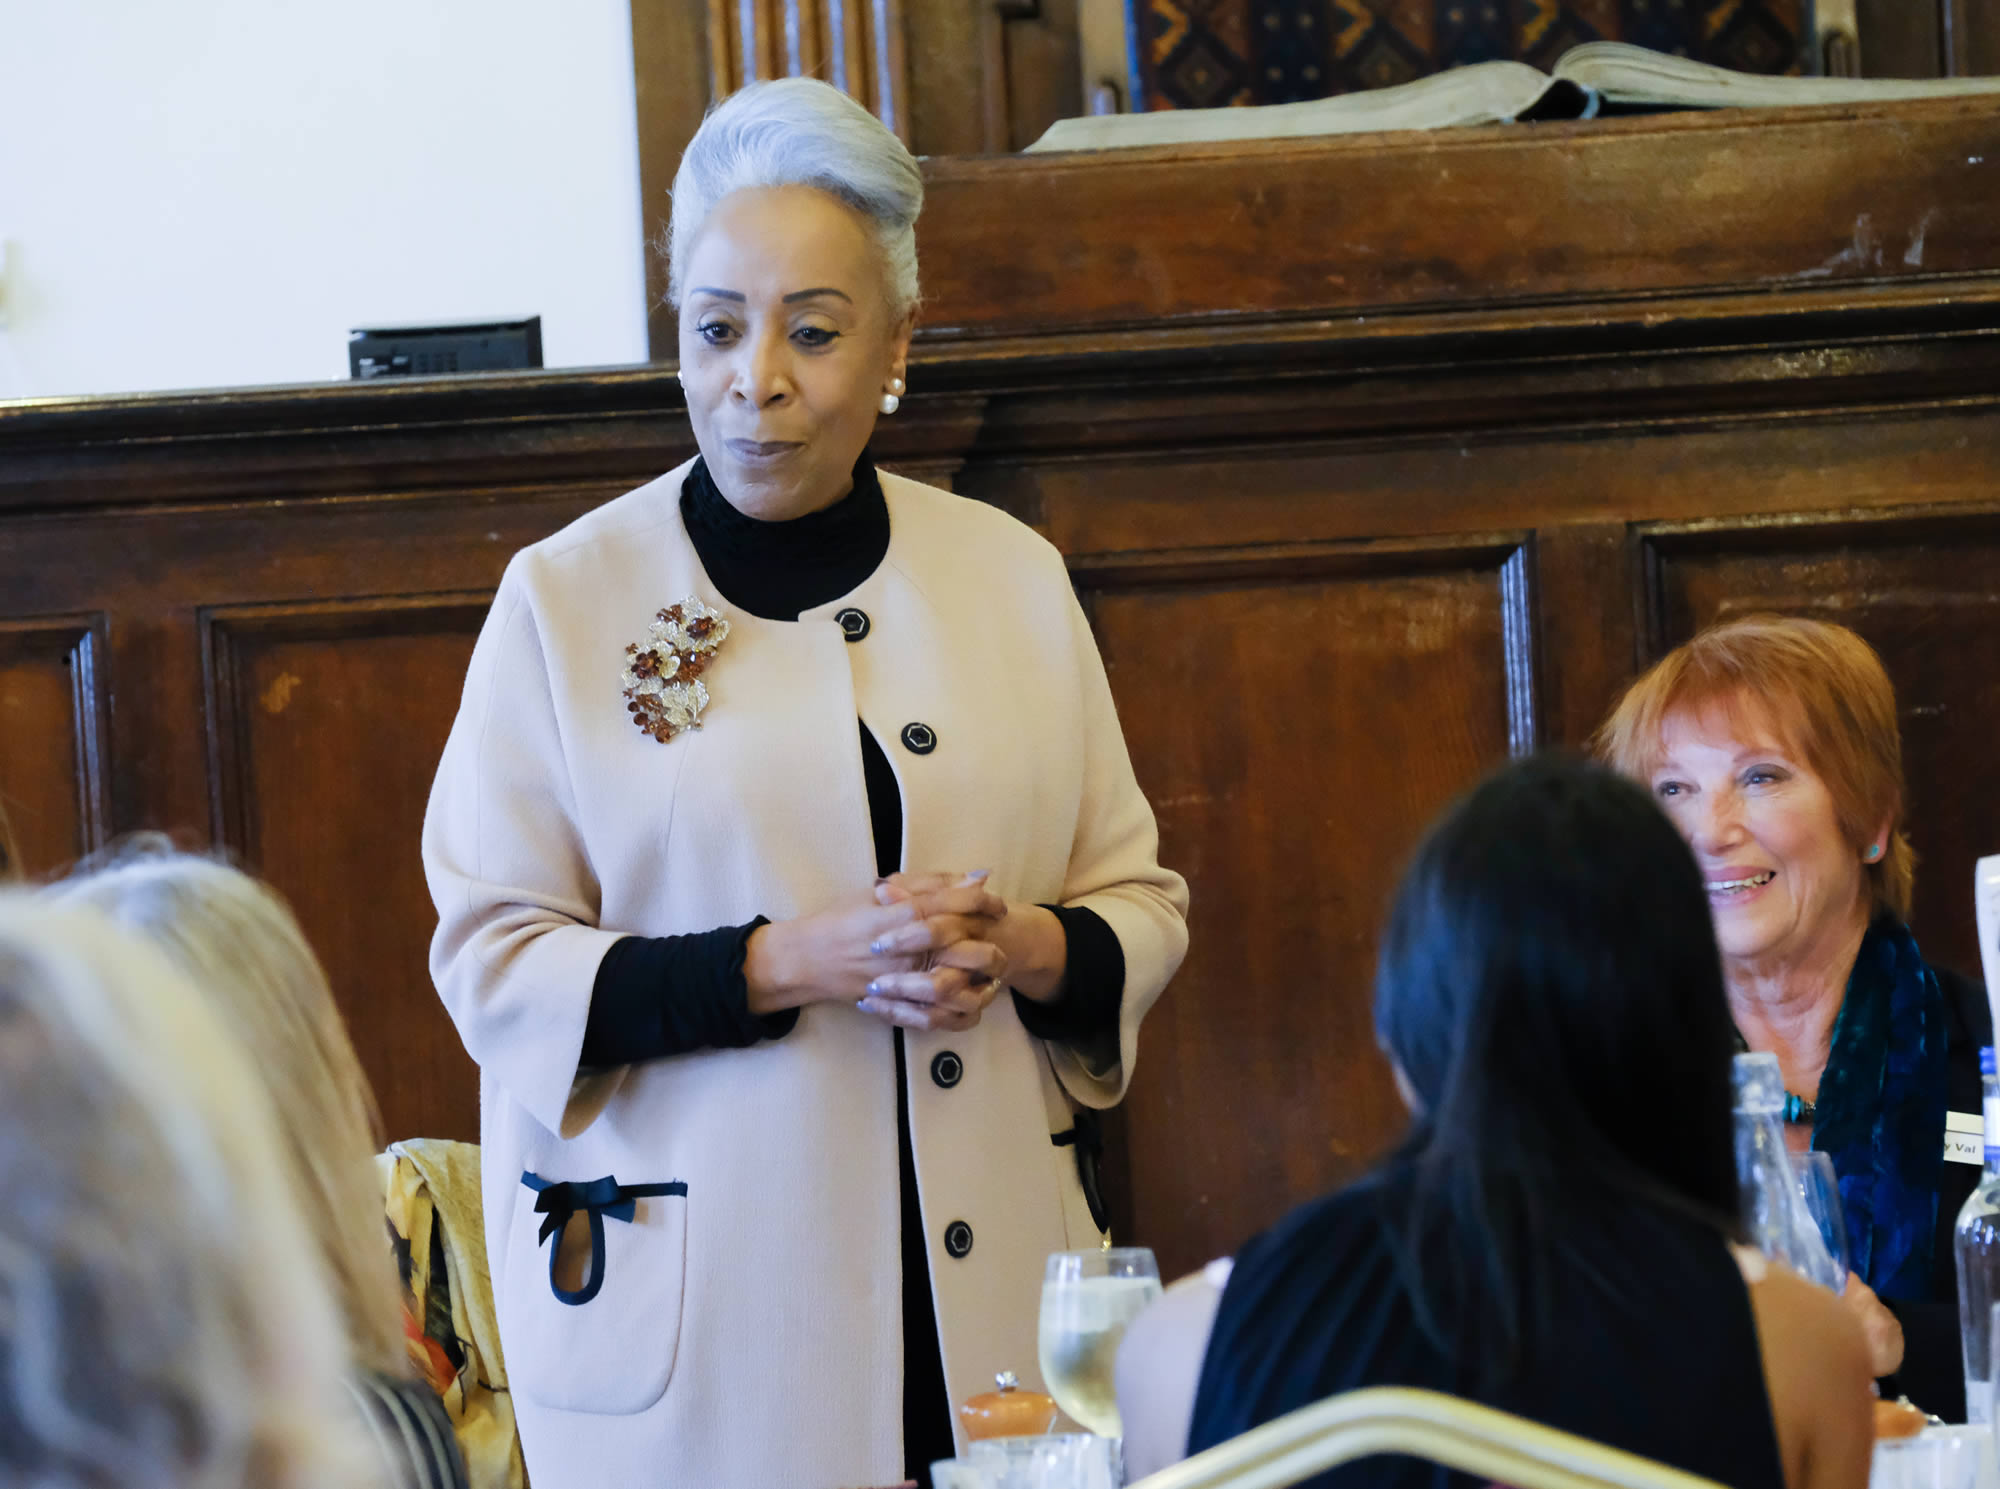 lady_vals_networking_lunch_april_2018_18085_249